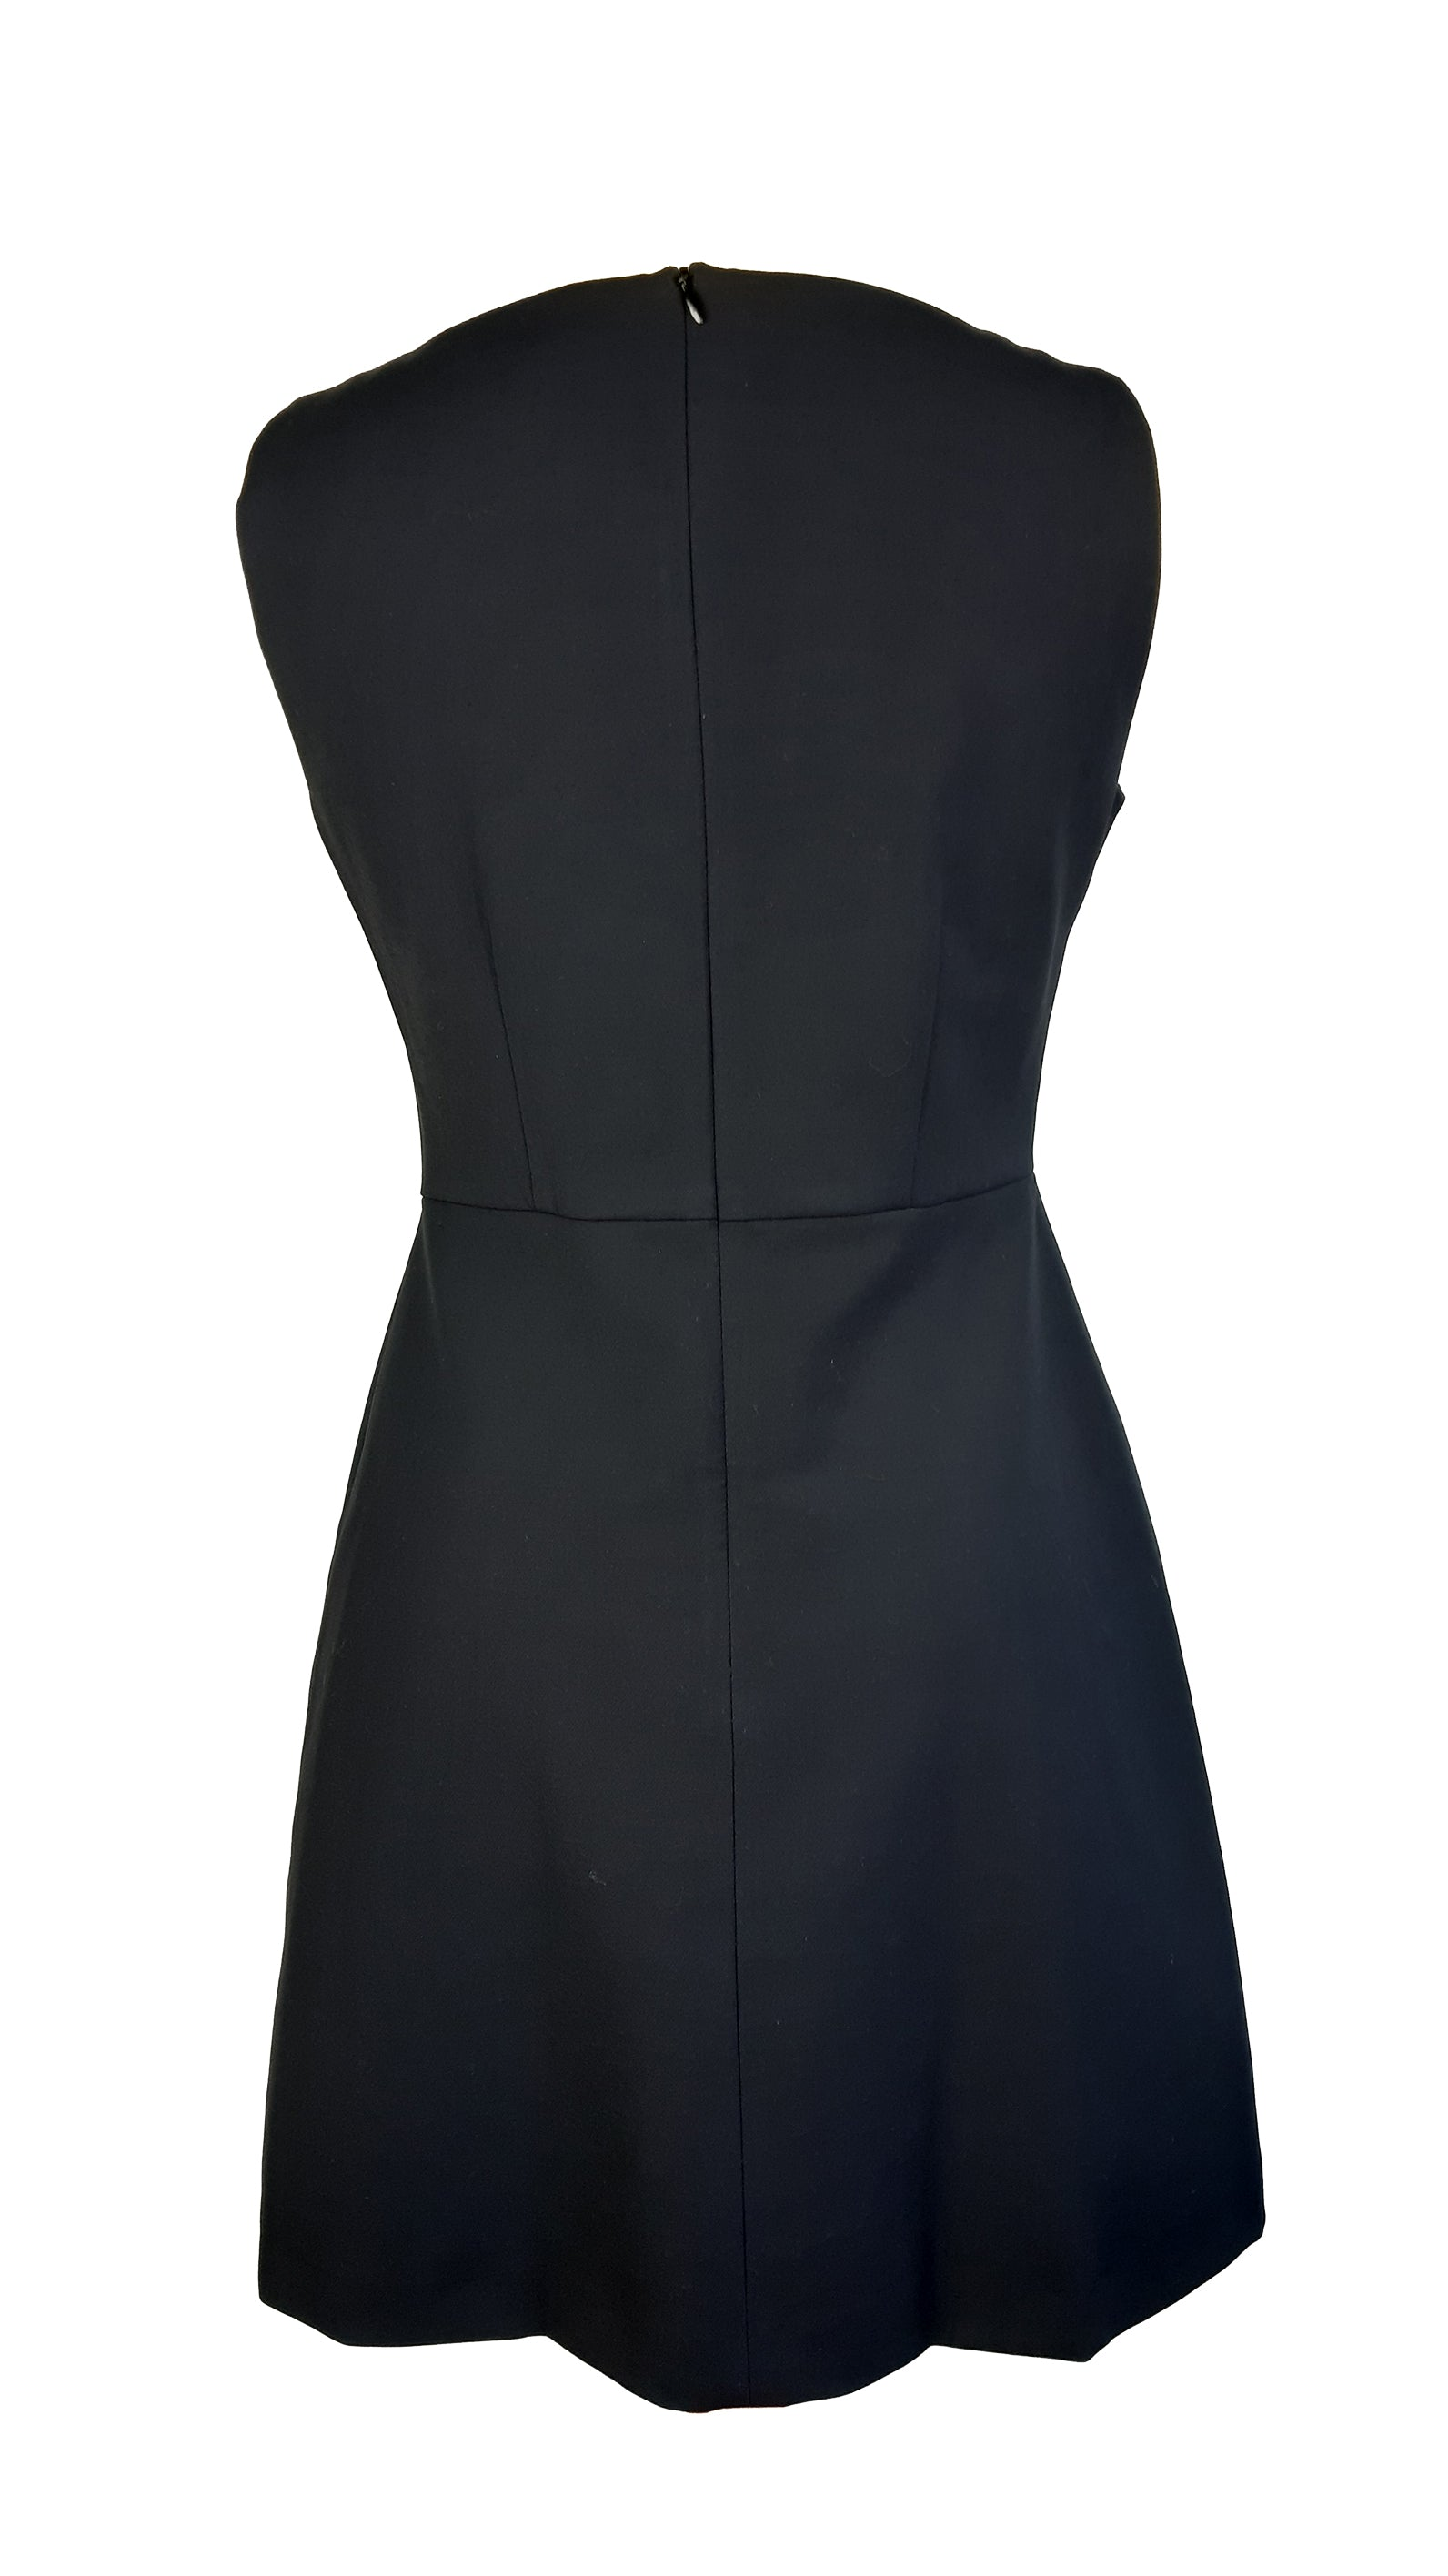 Tara Jarmon Black Dress with Cutout Neckline Size 38 (EU)